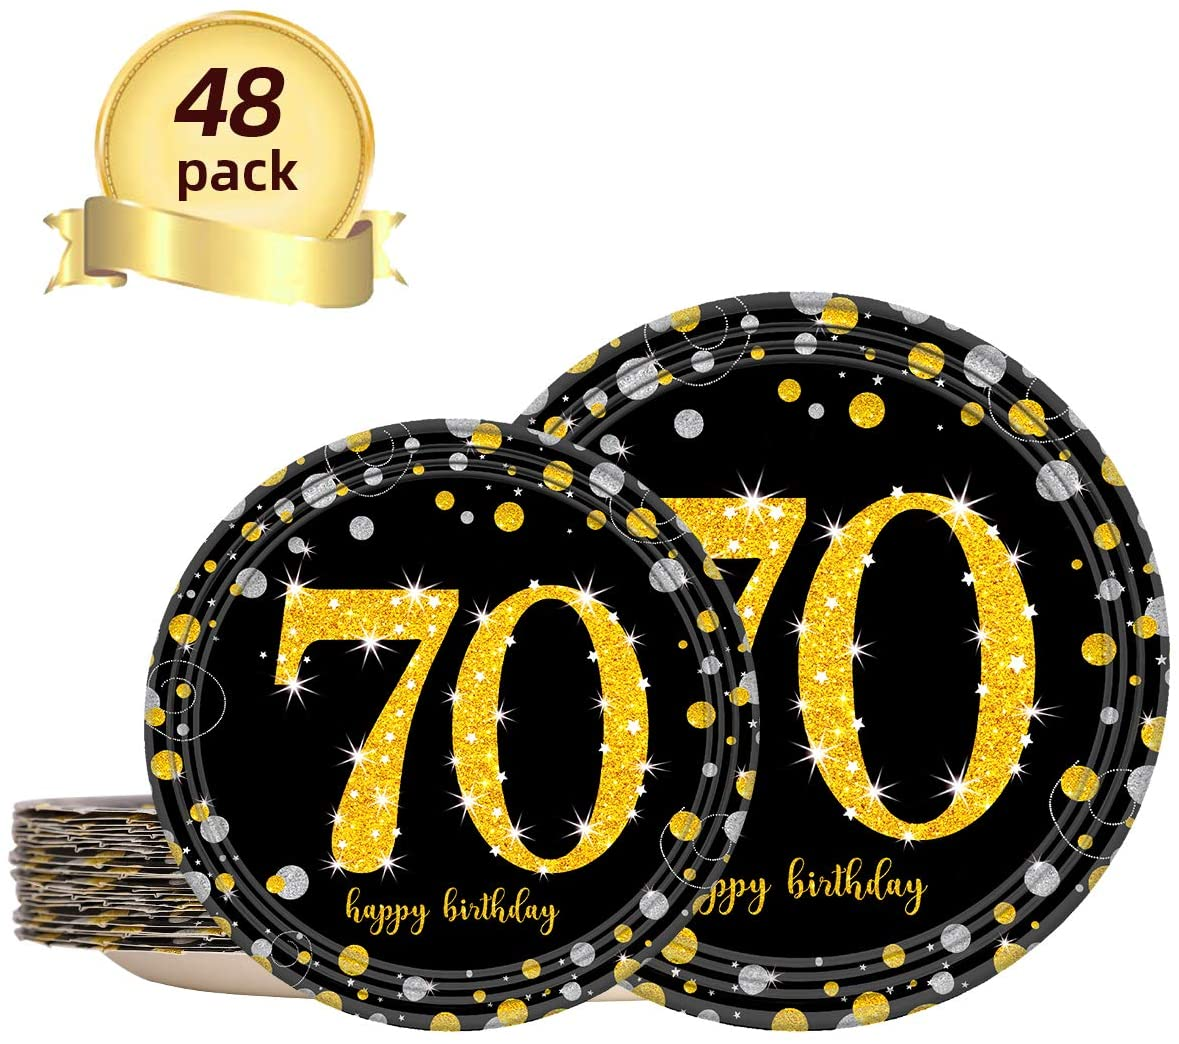 Trgowaul 70th Black and Gold Birthday Decorations Party Supplies Set for Women or Men, 24 Disposable 9 x 9 Inches Paper Dinner Plates, 24 Paper 7 x 7 Inches Dessert Plates for 24 Guests